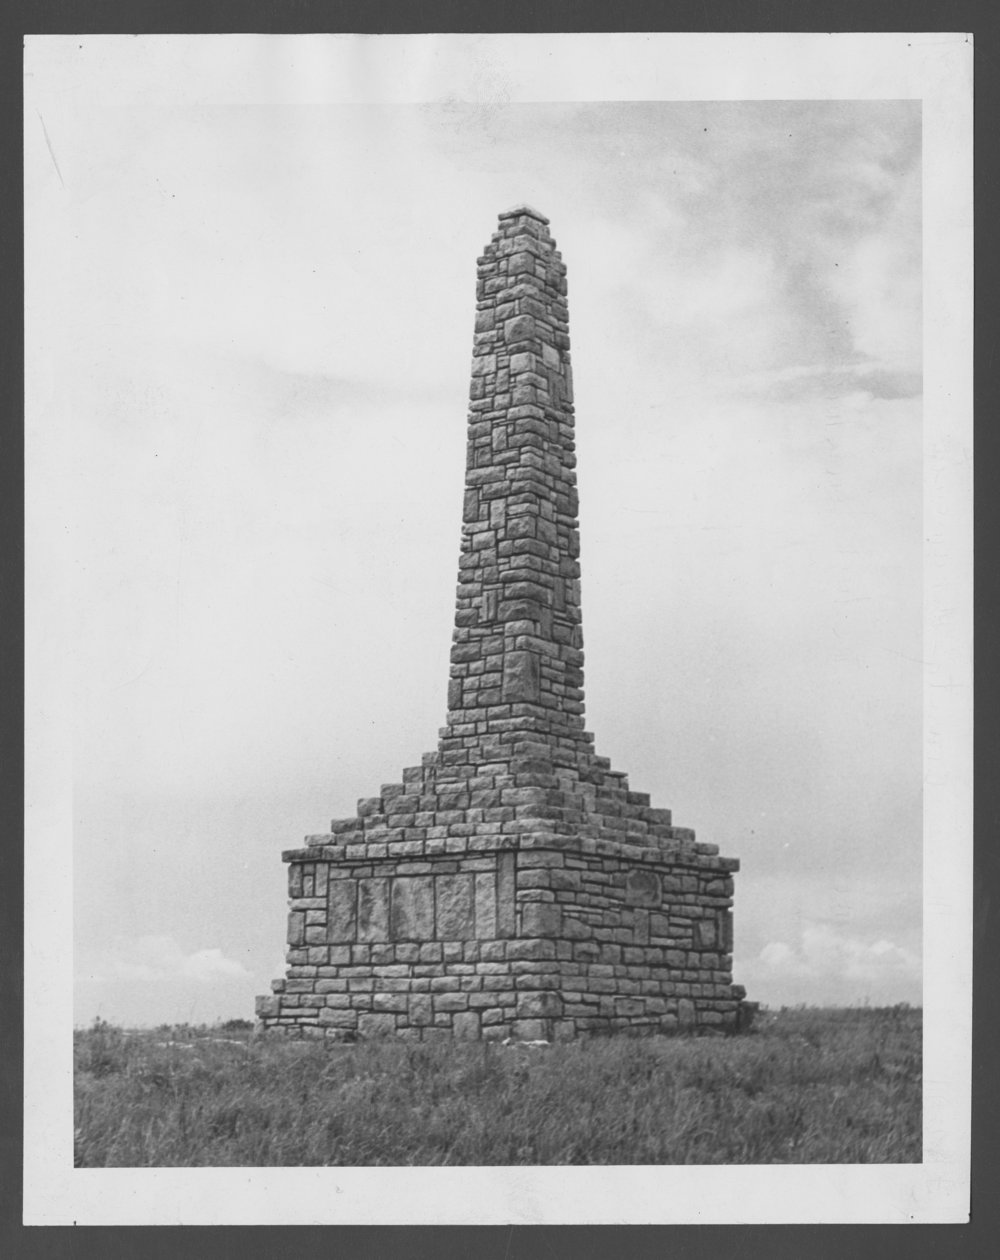 Unknown Kaw Indian monument, Council Grove, Kansas - 1